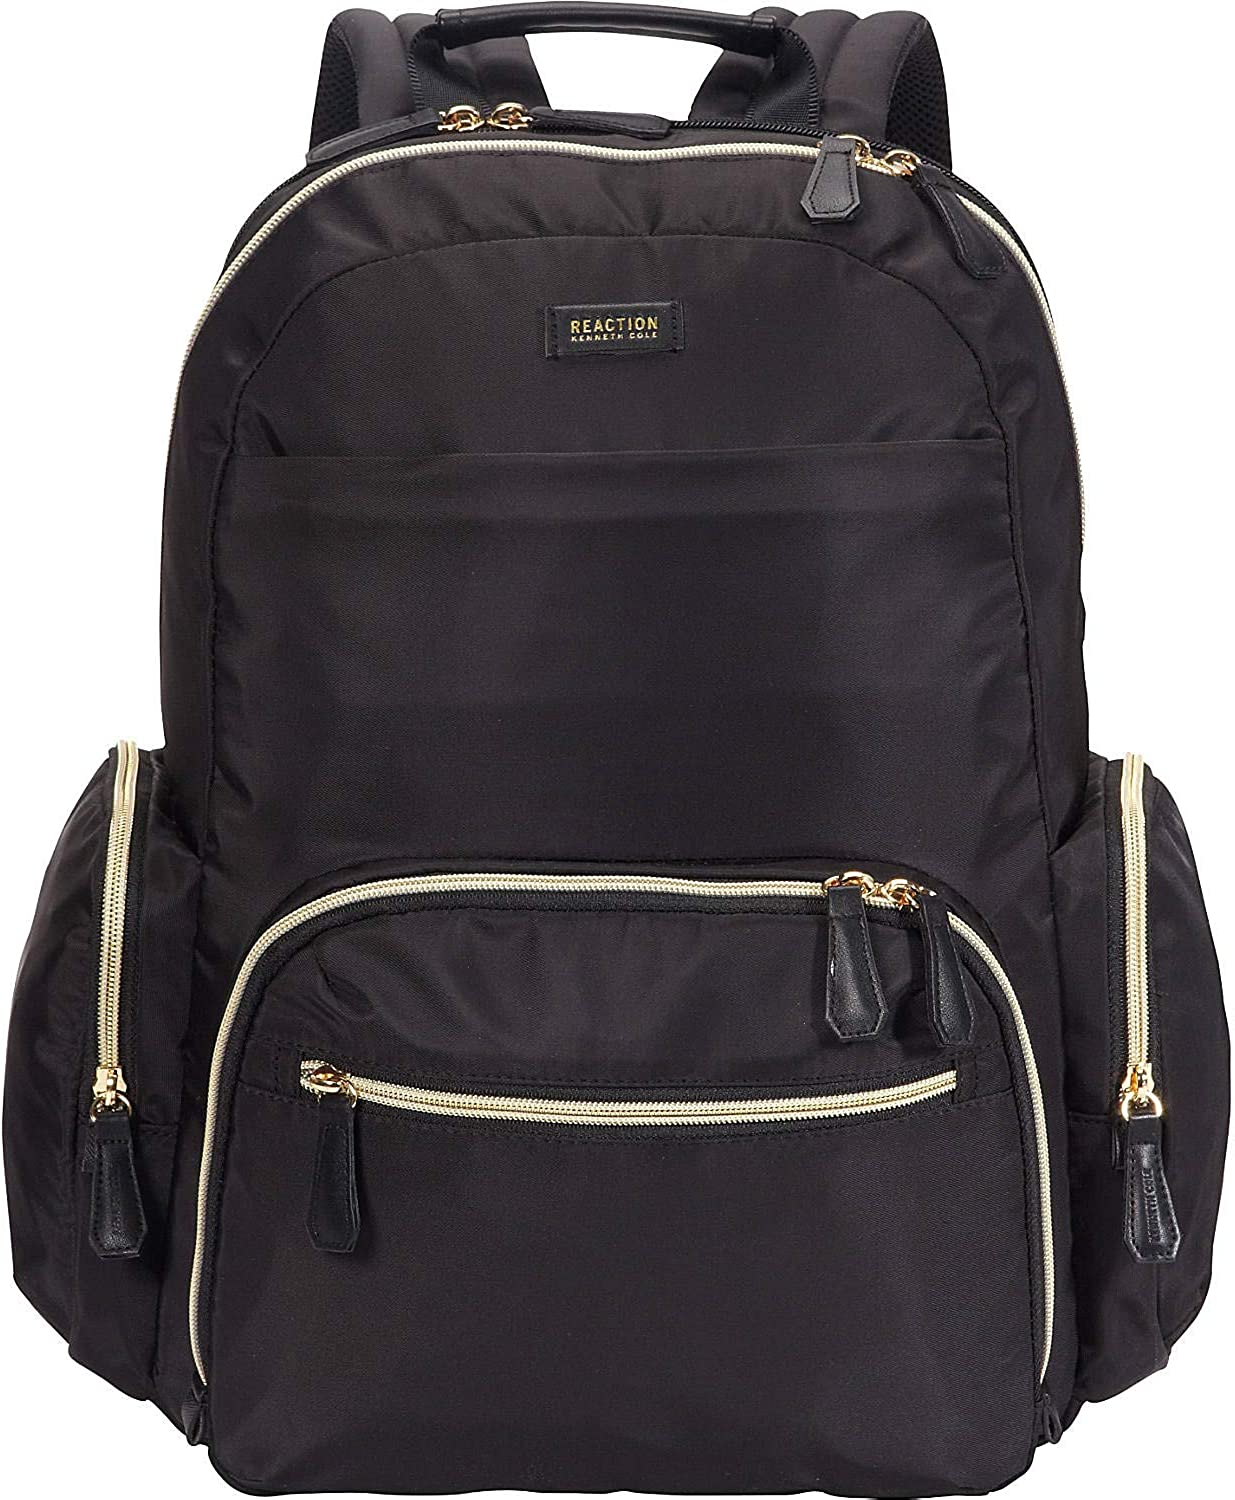 "Kenneth Cole Reaction Sophie Women's Silky Nylon 15.0"" Laptop & Tablet Anti-Theft RFID Backpack"